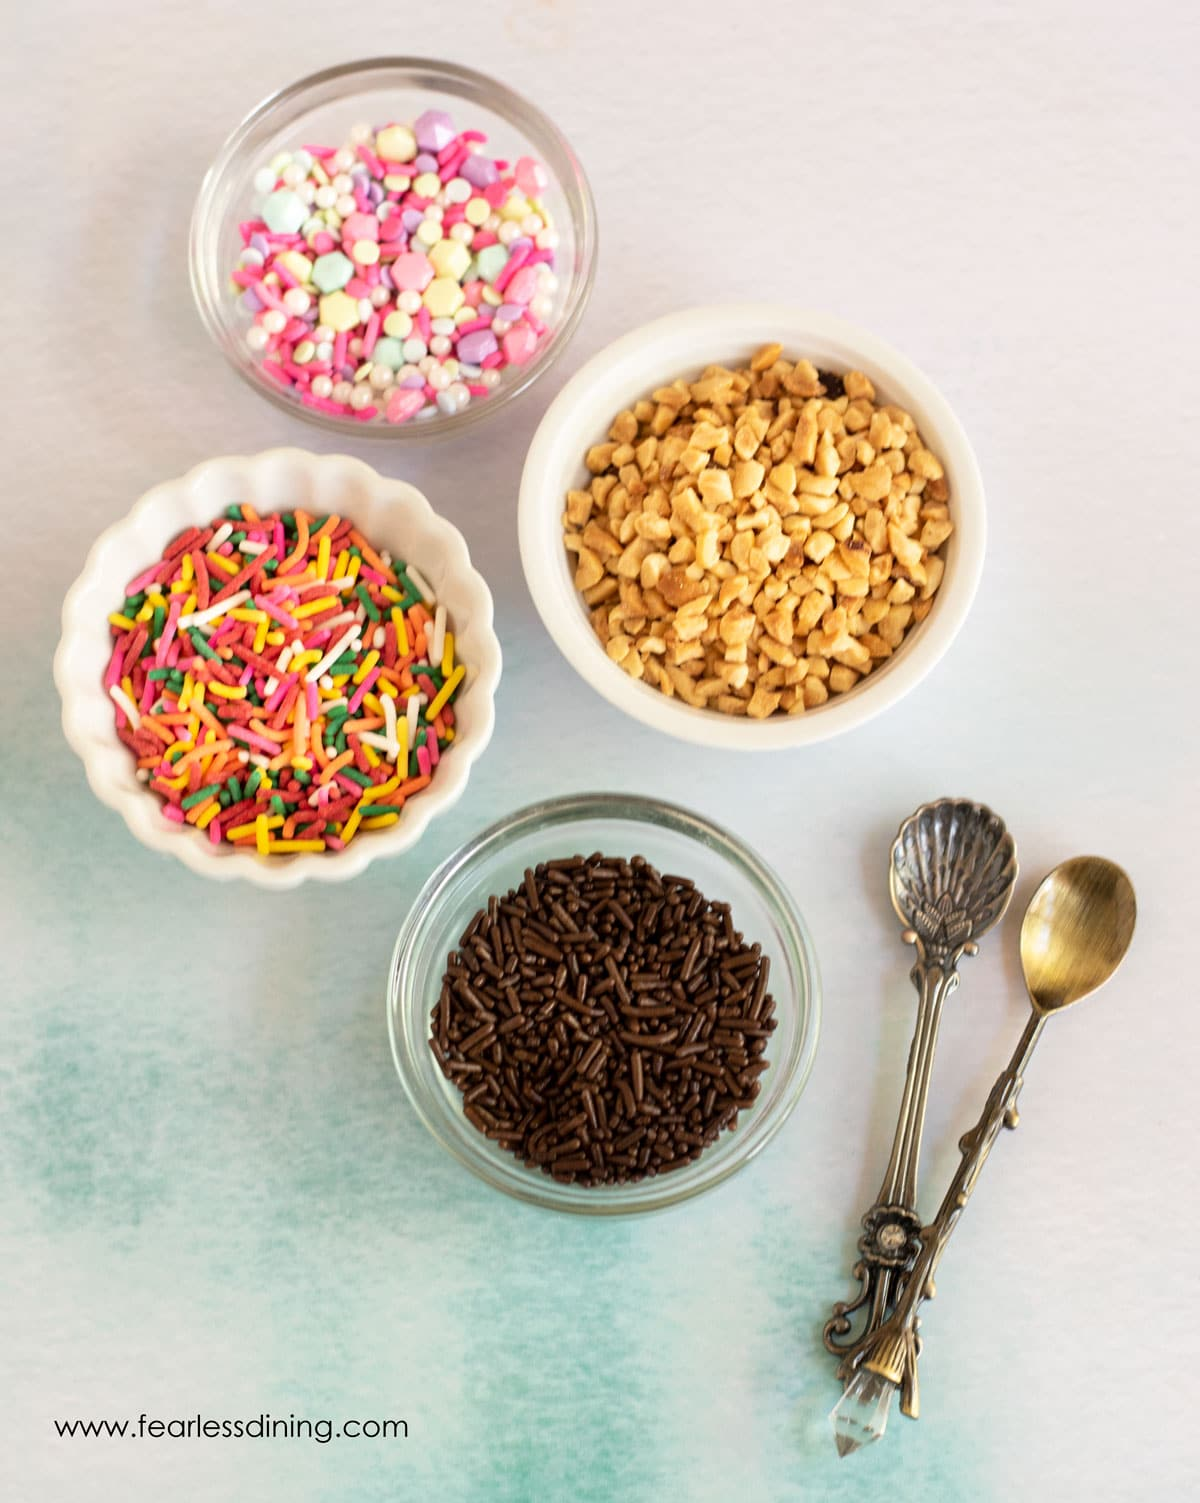 toppings bar with dishes of sprinkles and chopped nuts